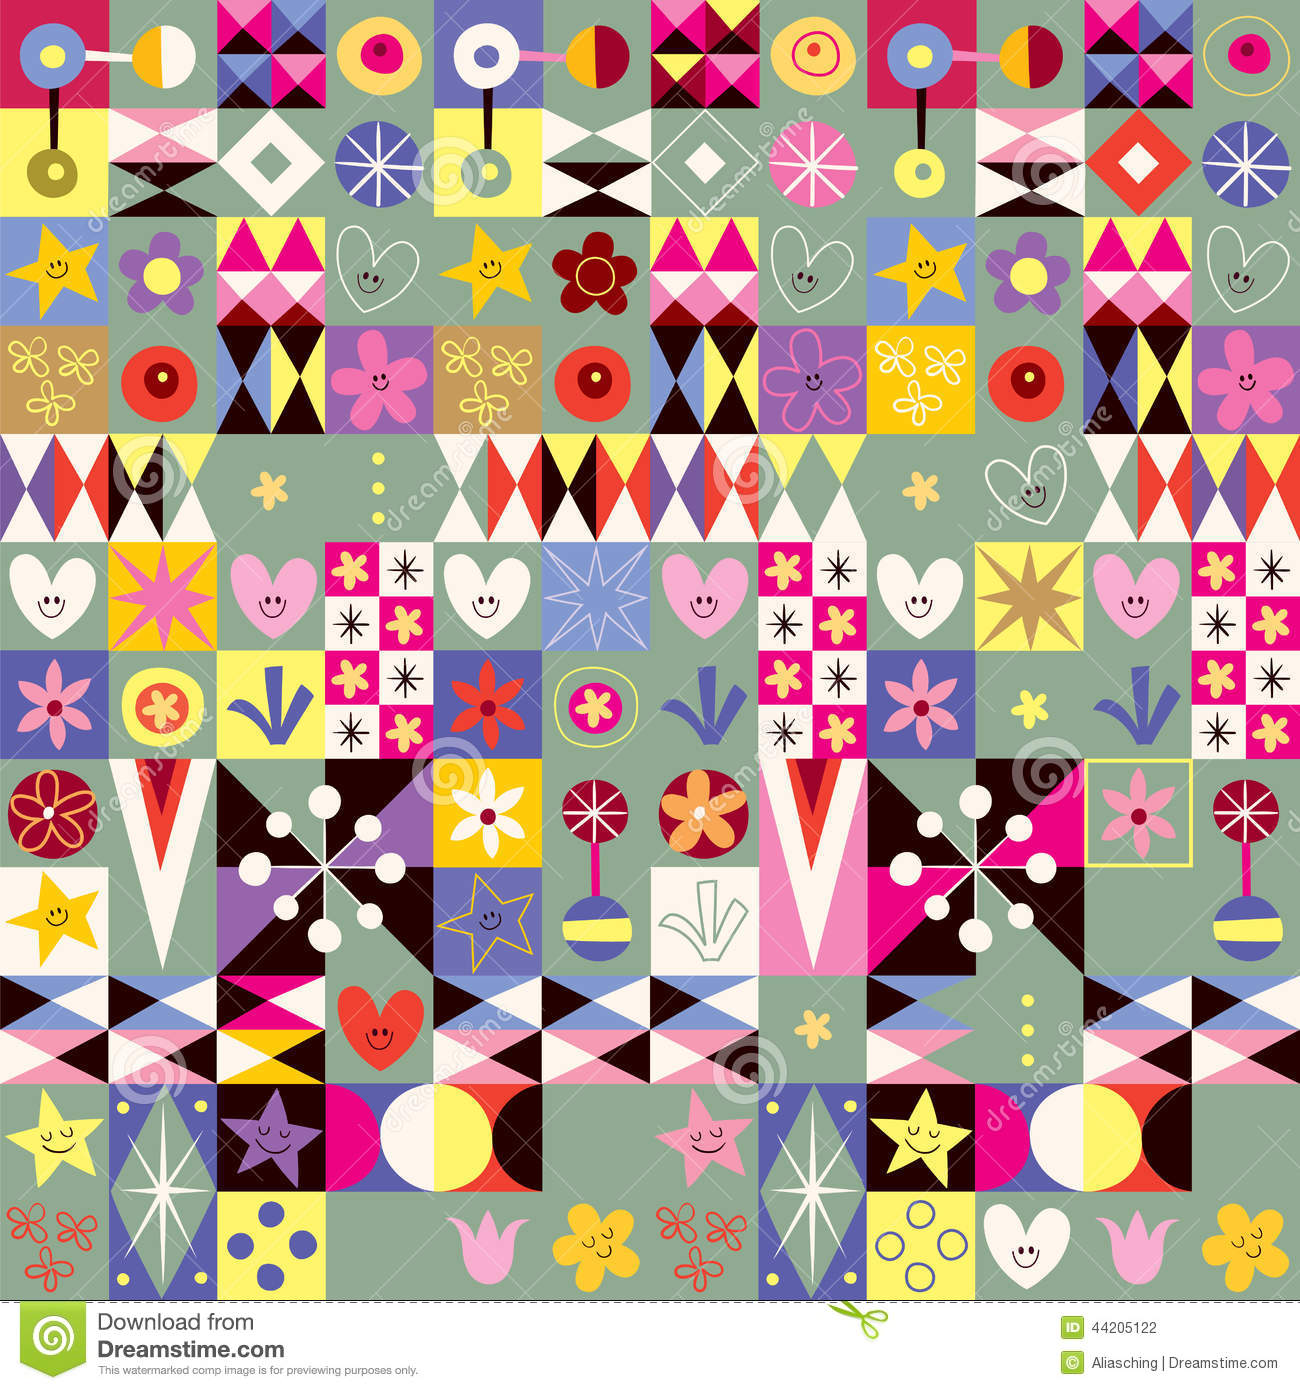 Abstract art hearts flowers cute pattern stock vector for Cute abstract art